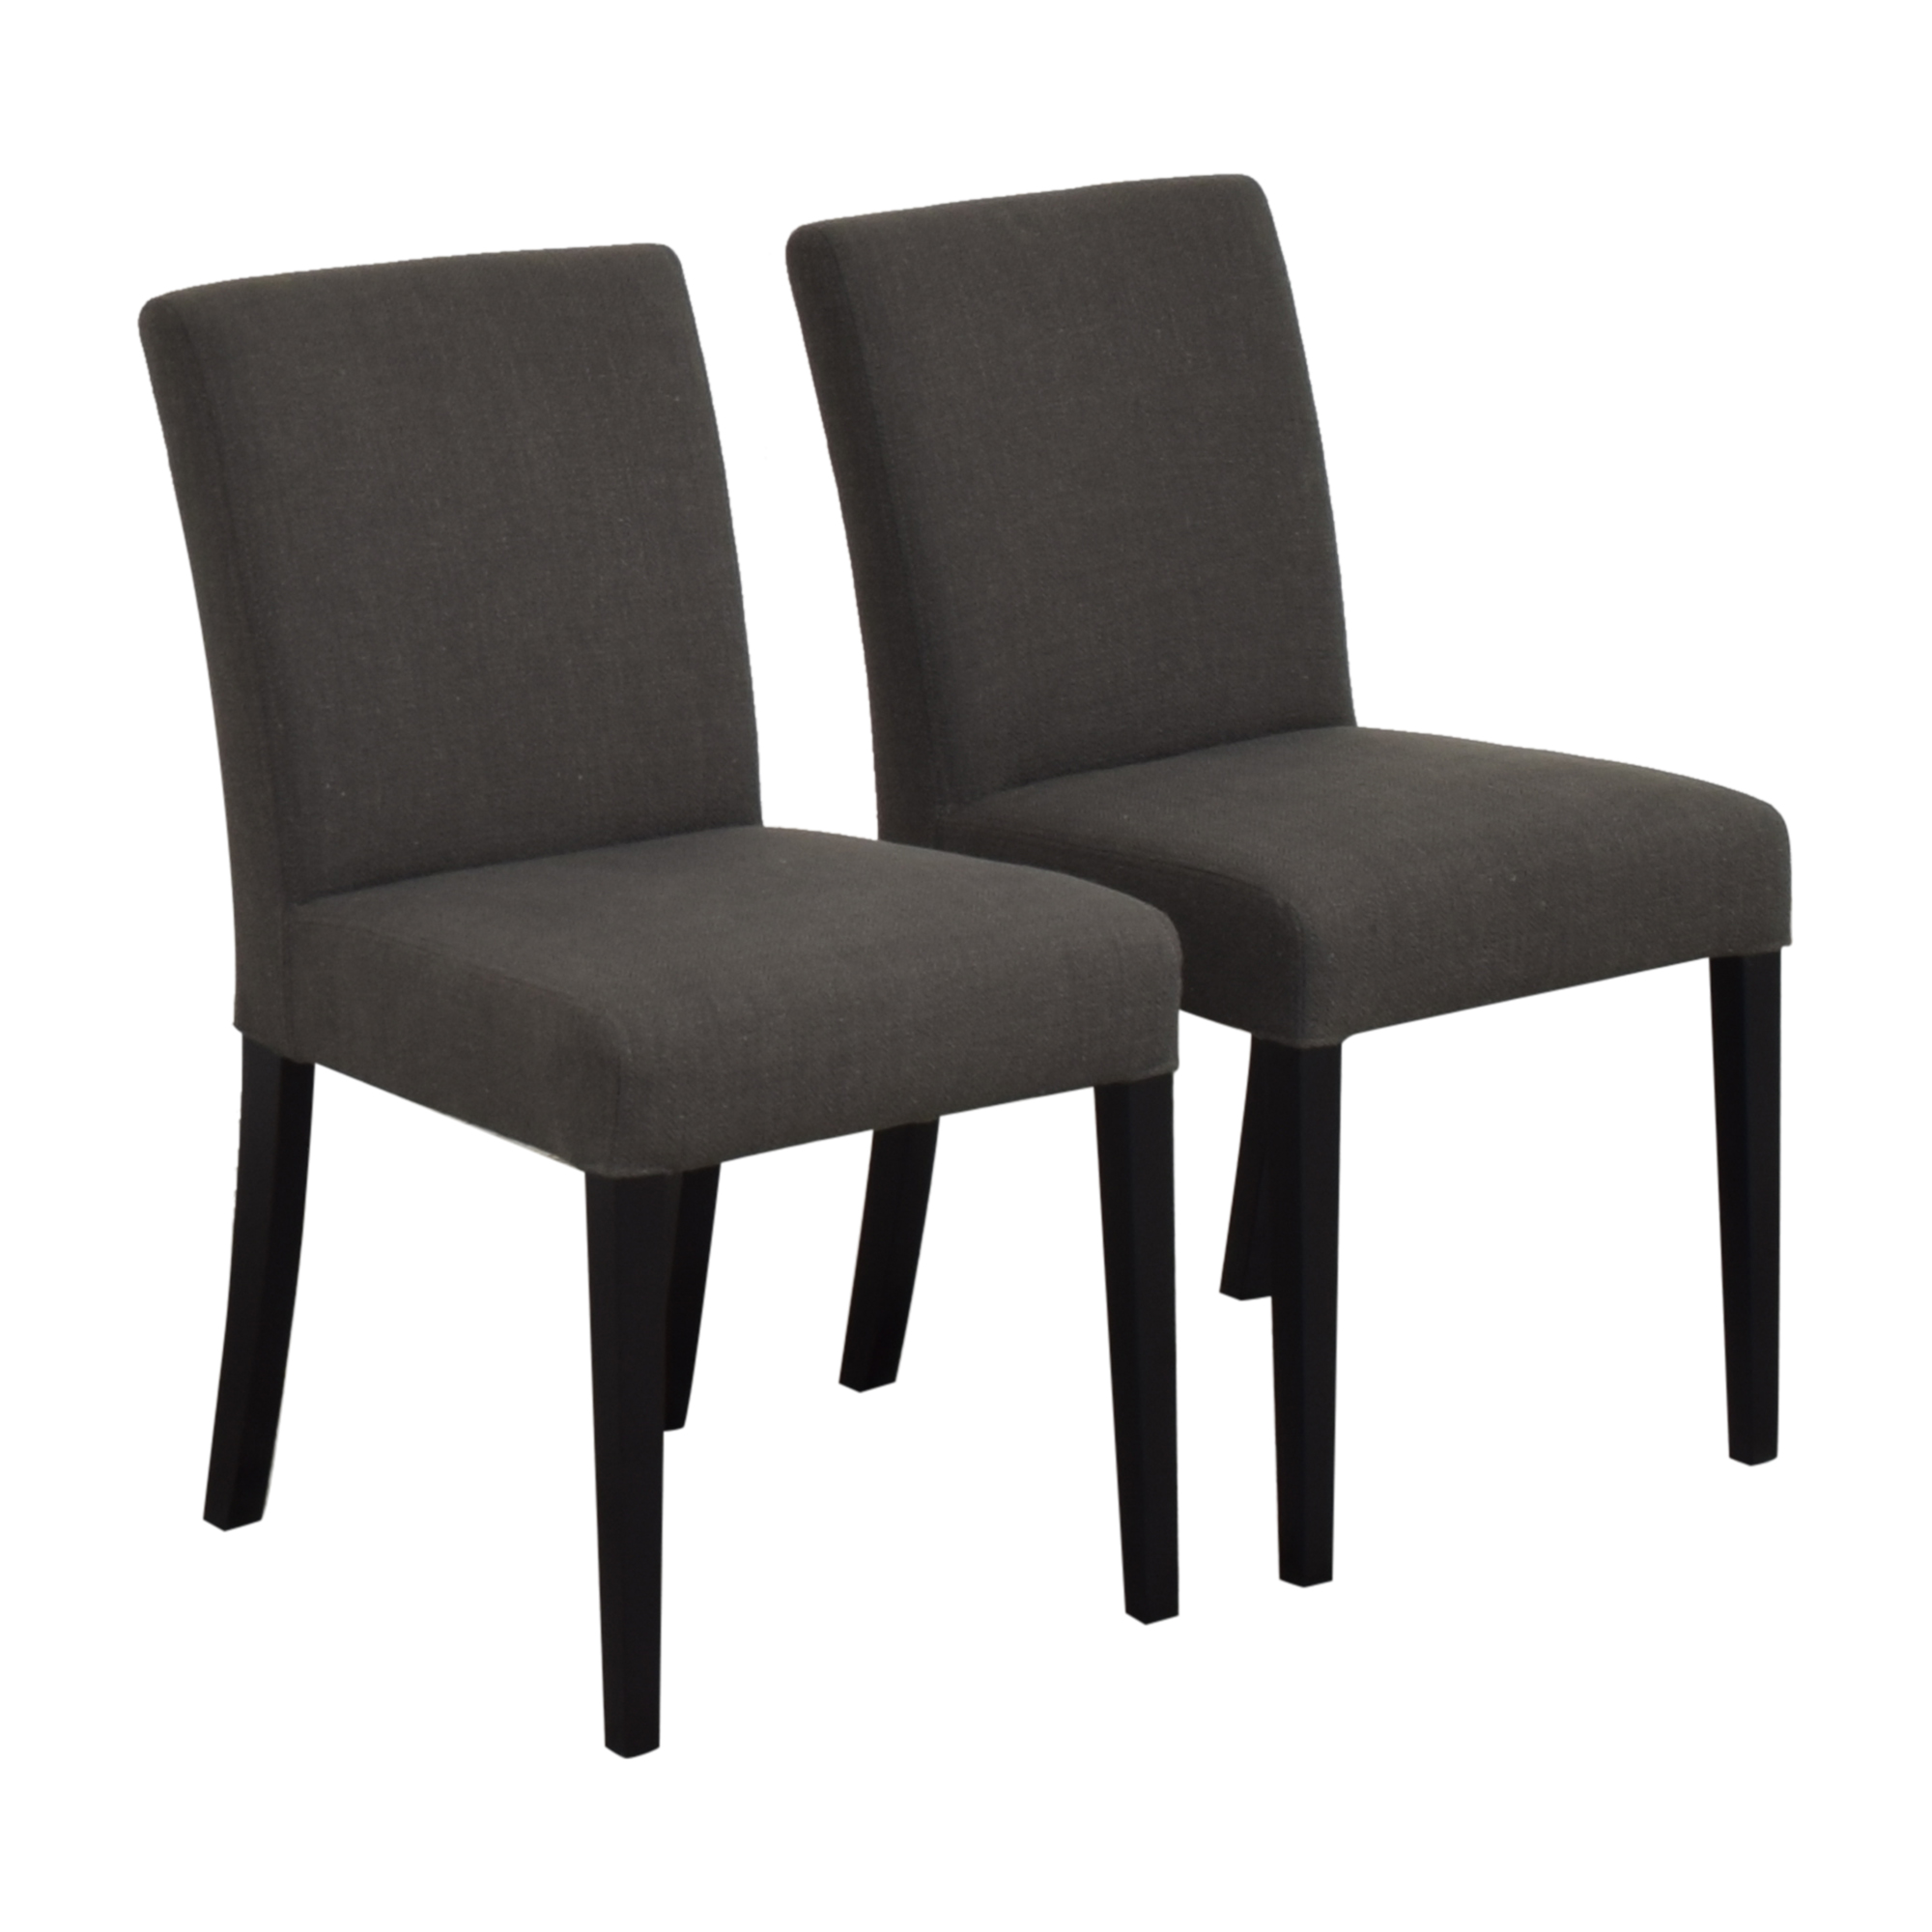 Crate & Barrel Lowe Dining Chairs Crate & Barrel